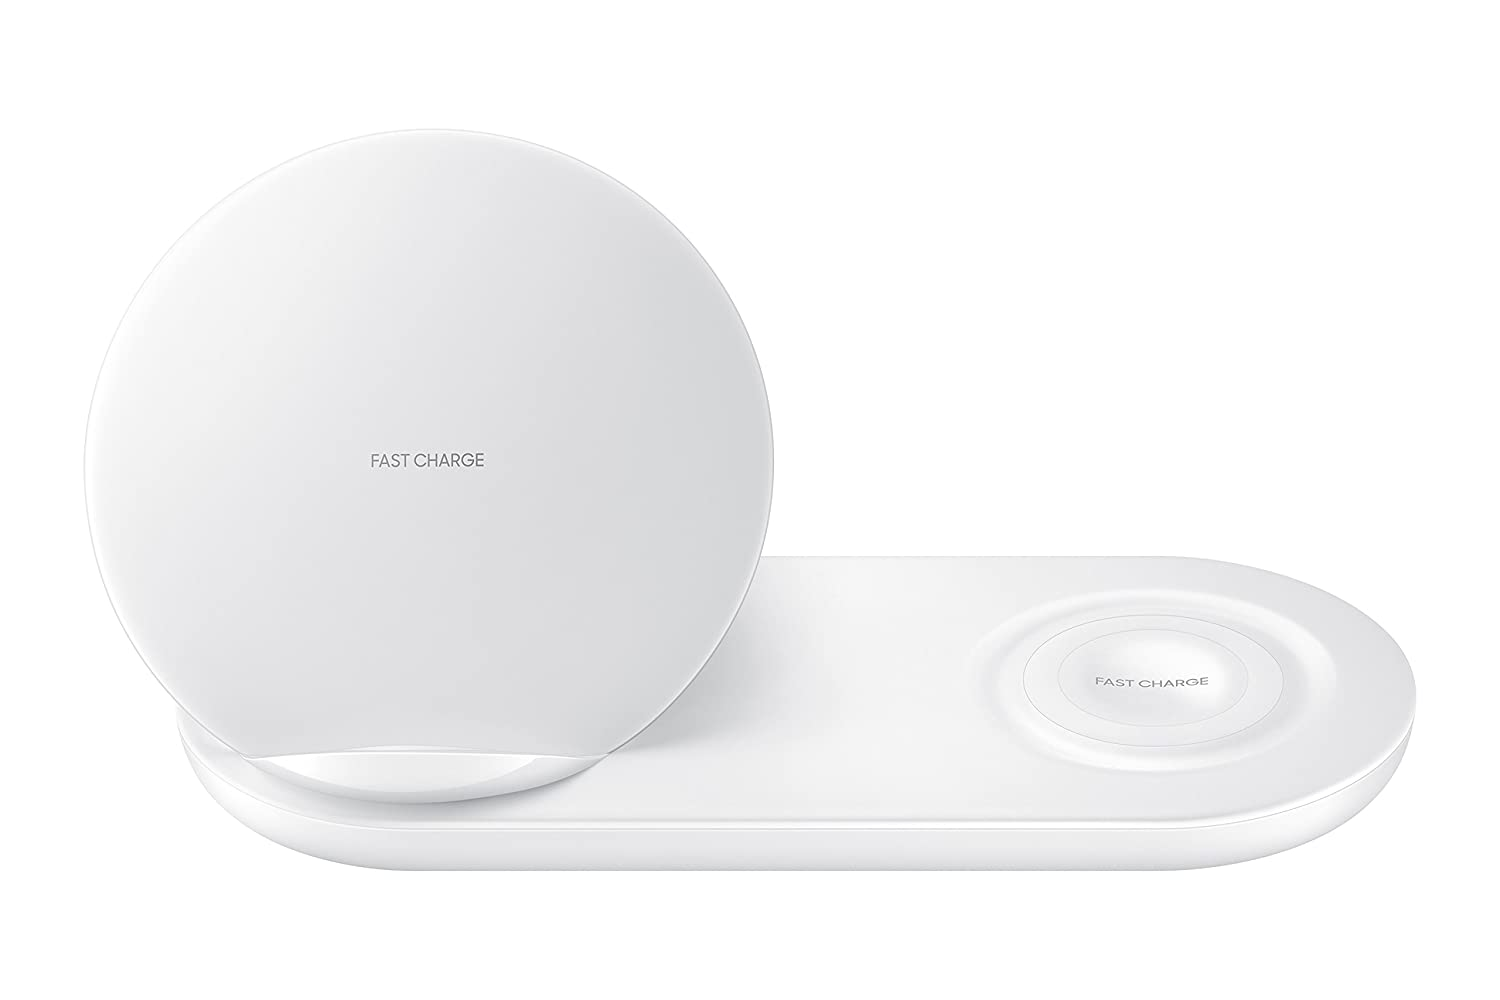 Samsung Wireless Charger Duo, Fast Charge Stand & Pad, Universally Compatible with Qi Enabled Phones and Select Samsung Watches (US Version), White